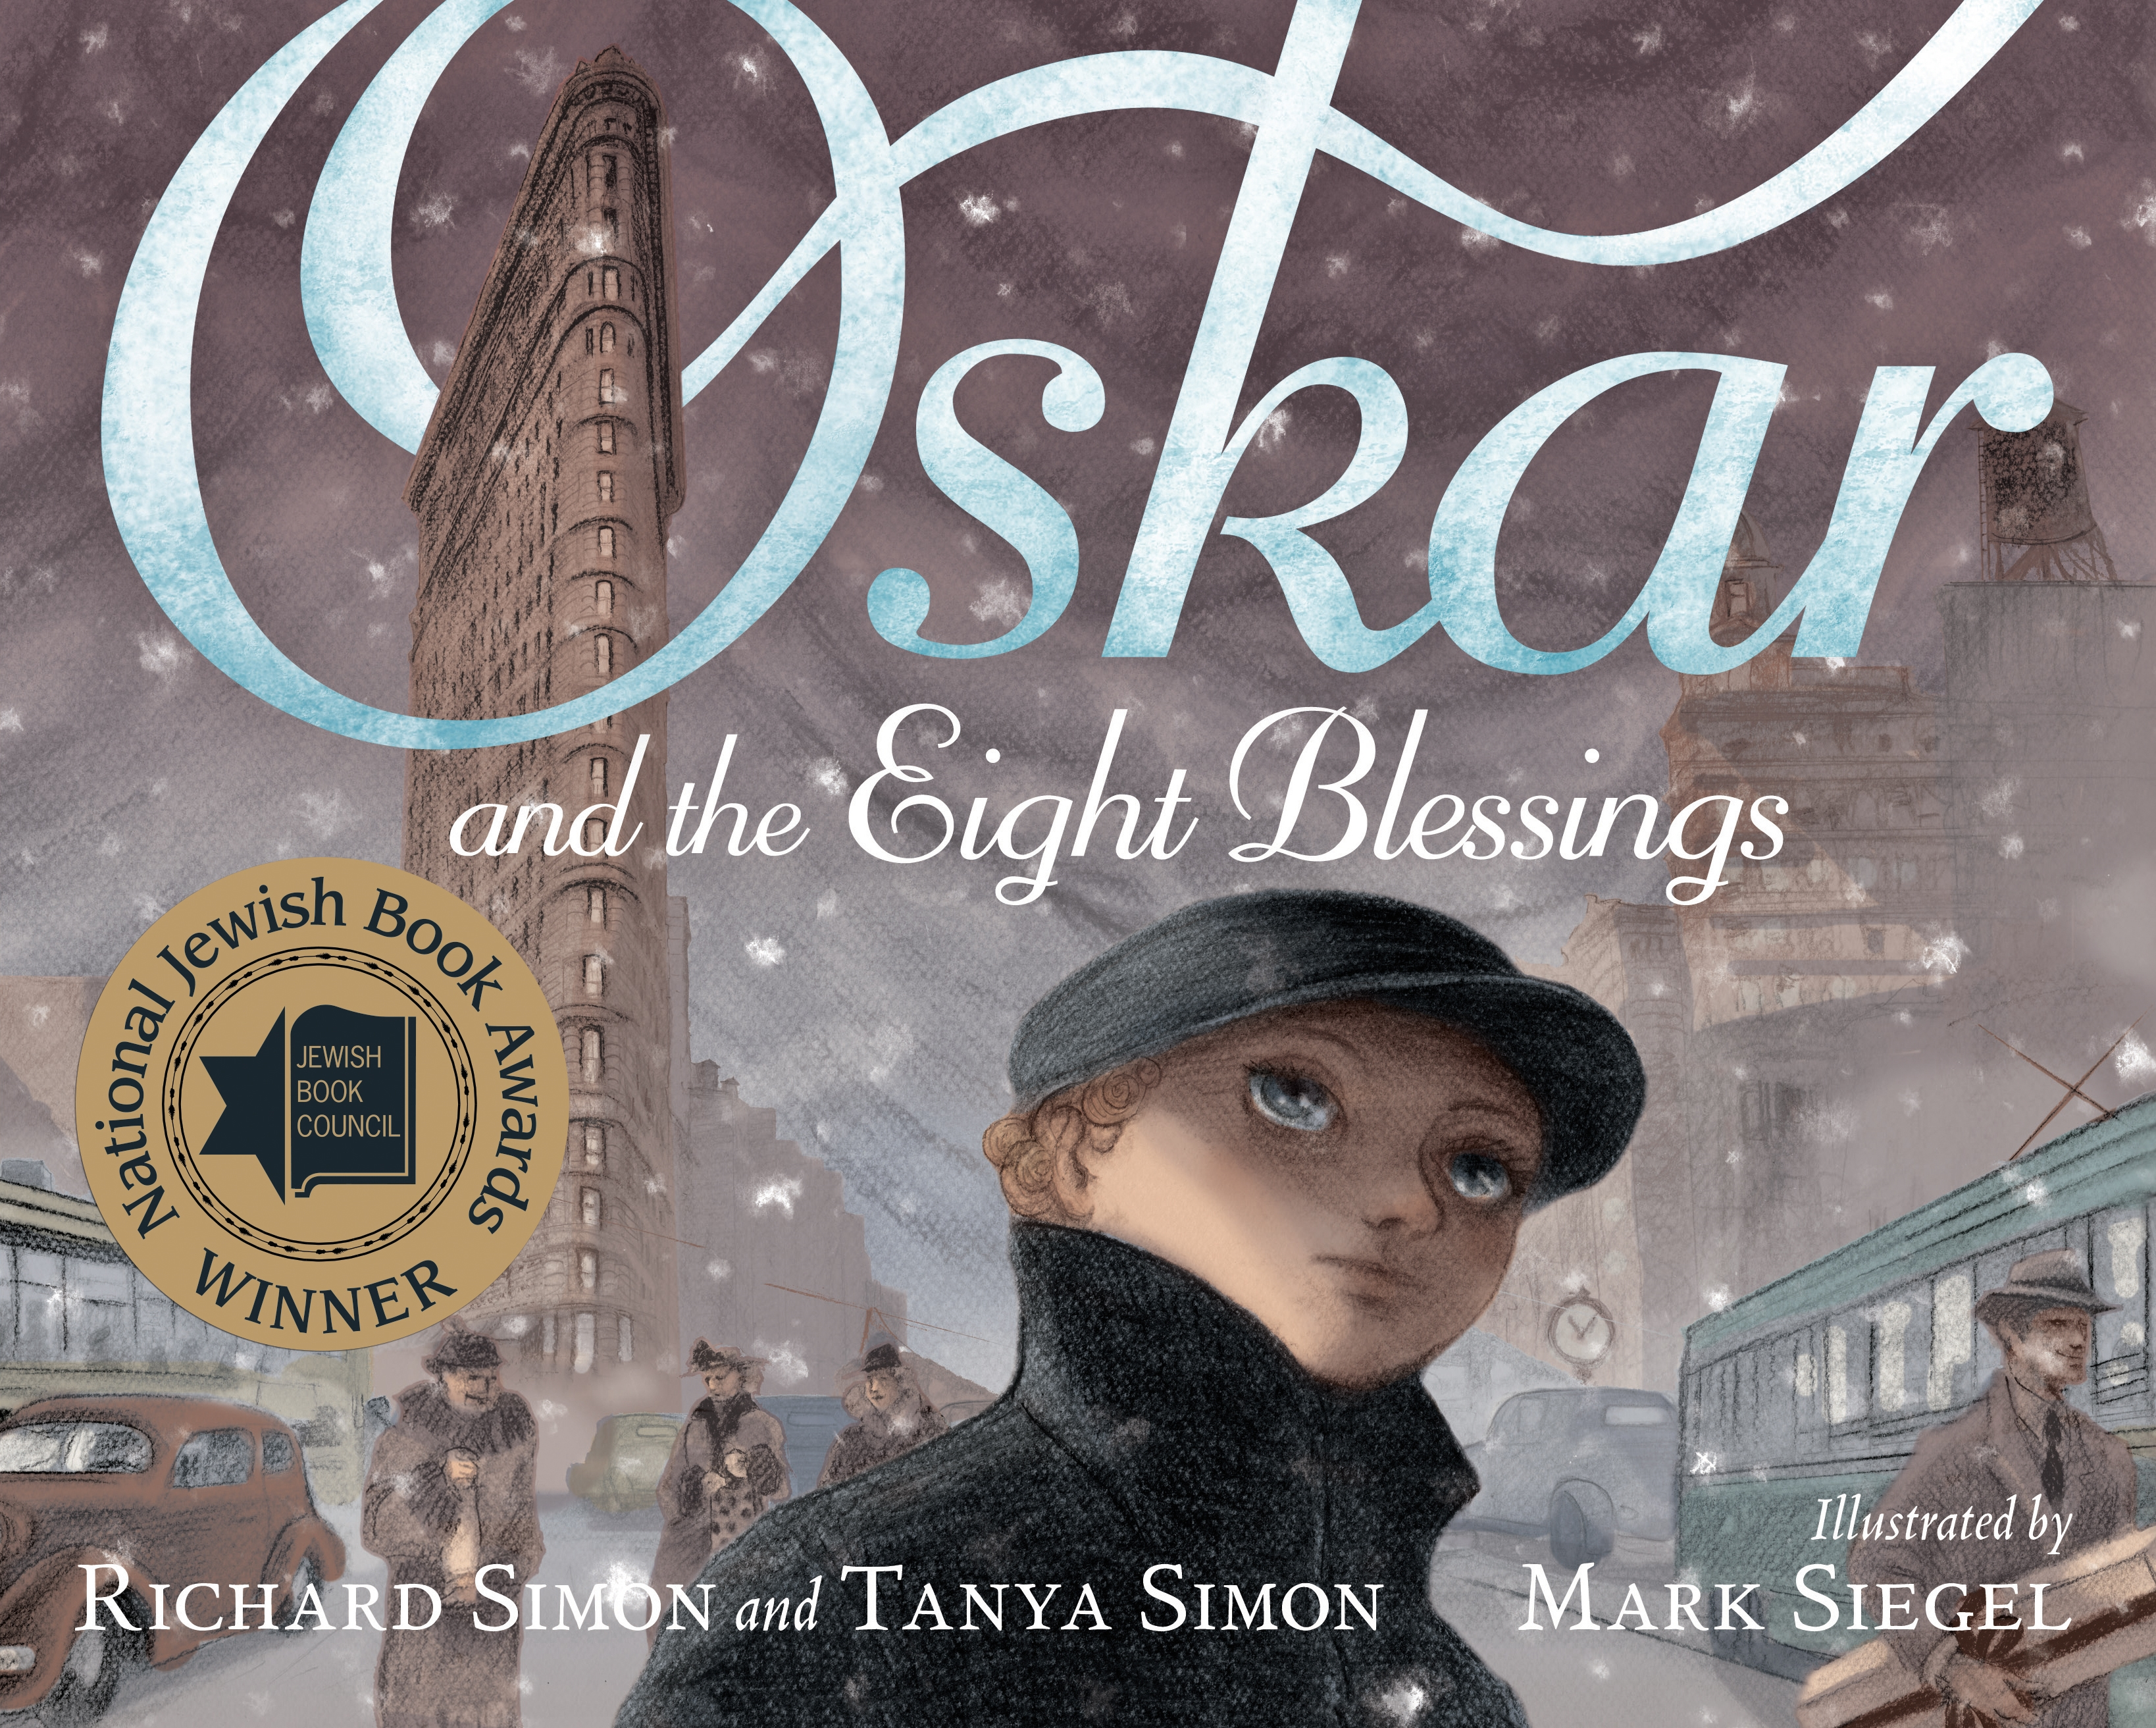 Sunday Story Time with Mark Siegel (Illustrator of Oskar and the Eight Blessings)